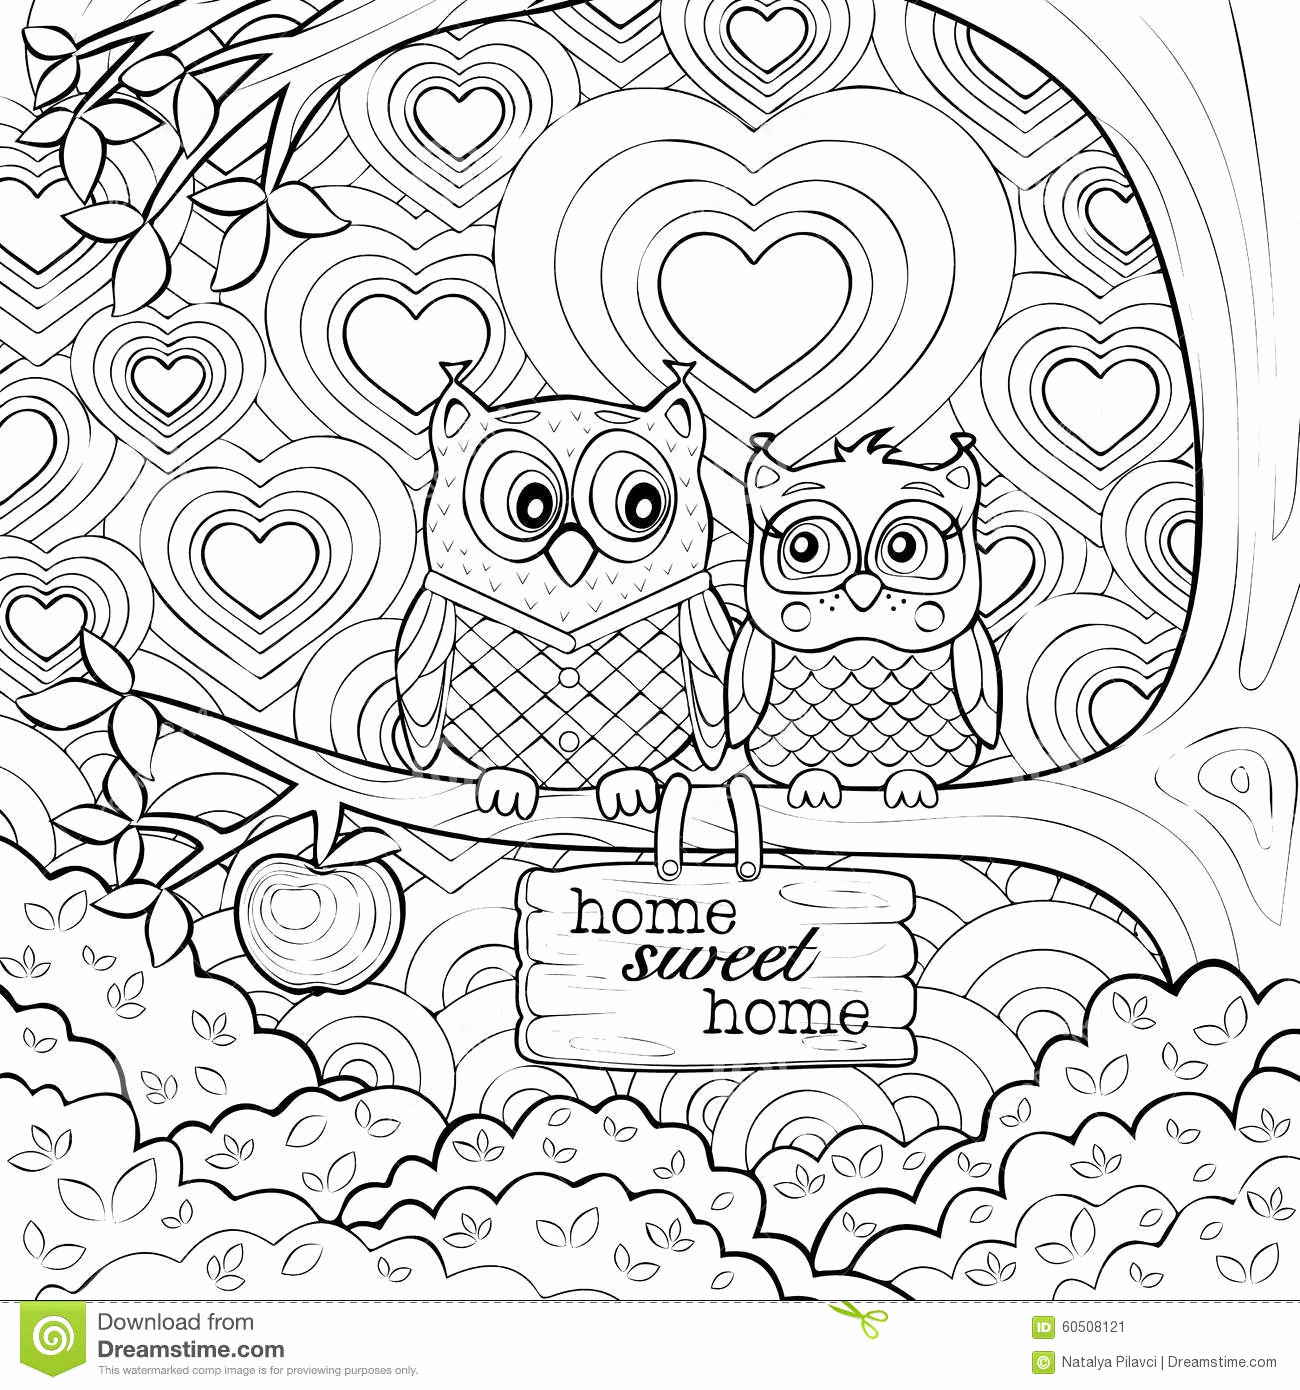 Coloring Pages : Beanie Boo Coloring Pages That You Can Print Free - Free Printable South Park Coloring Pages